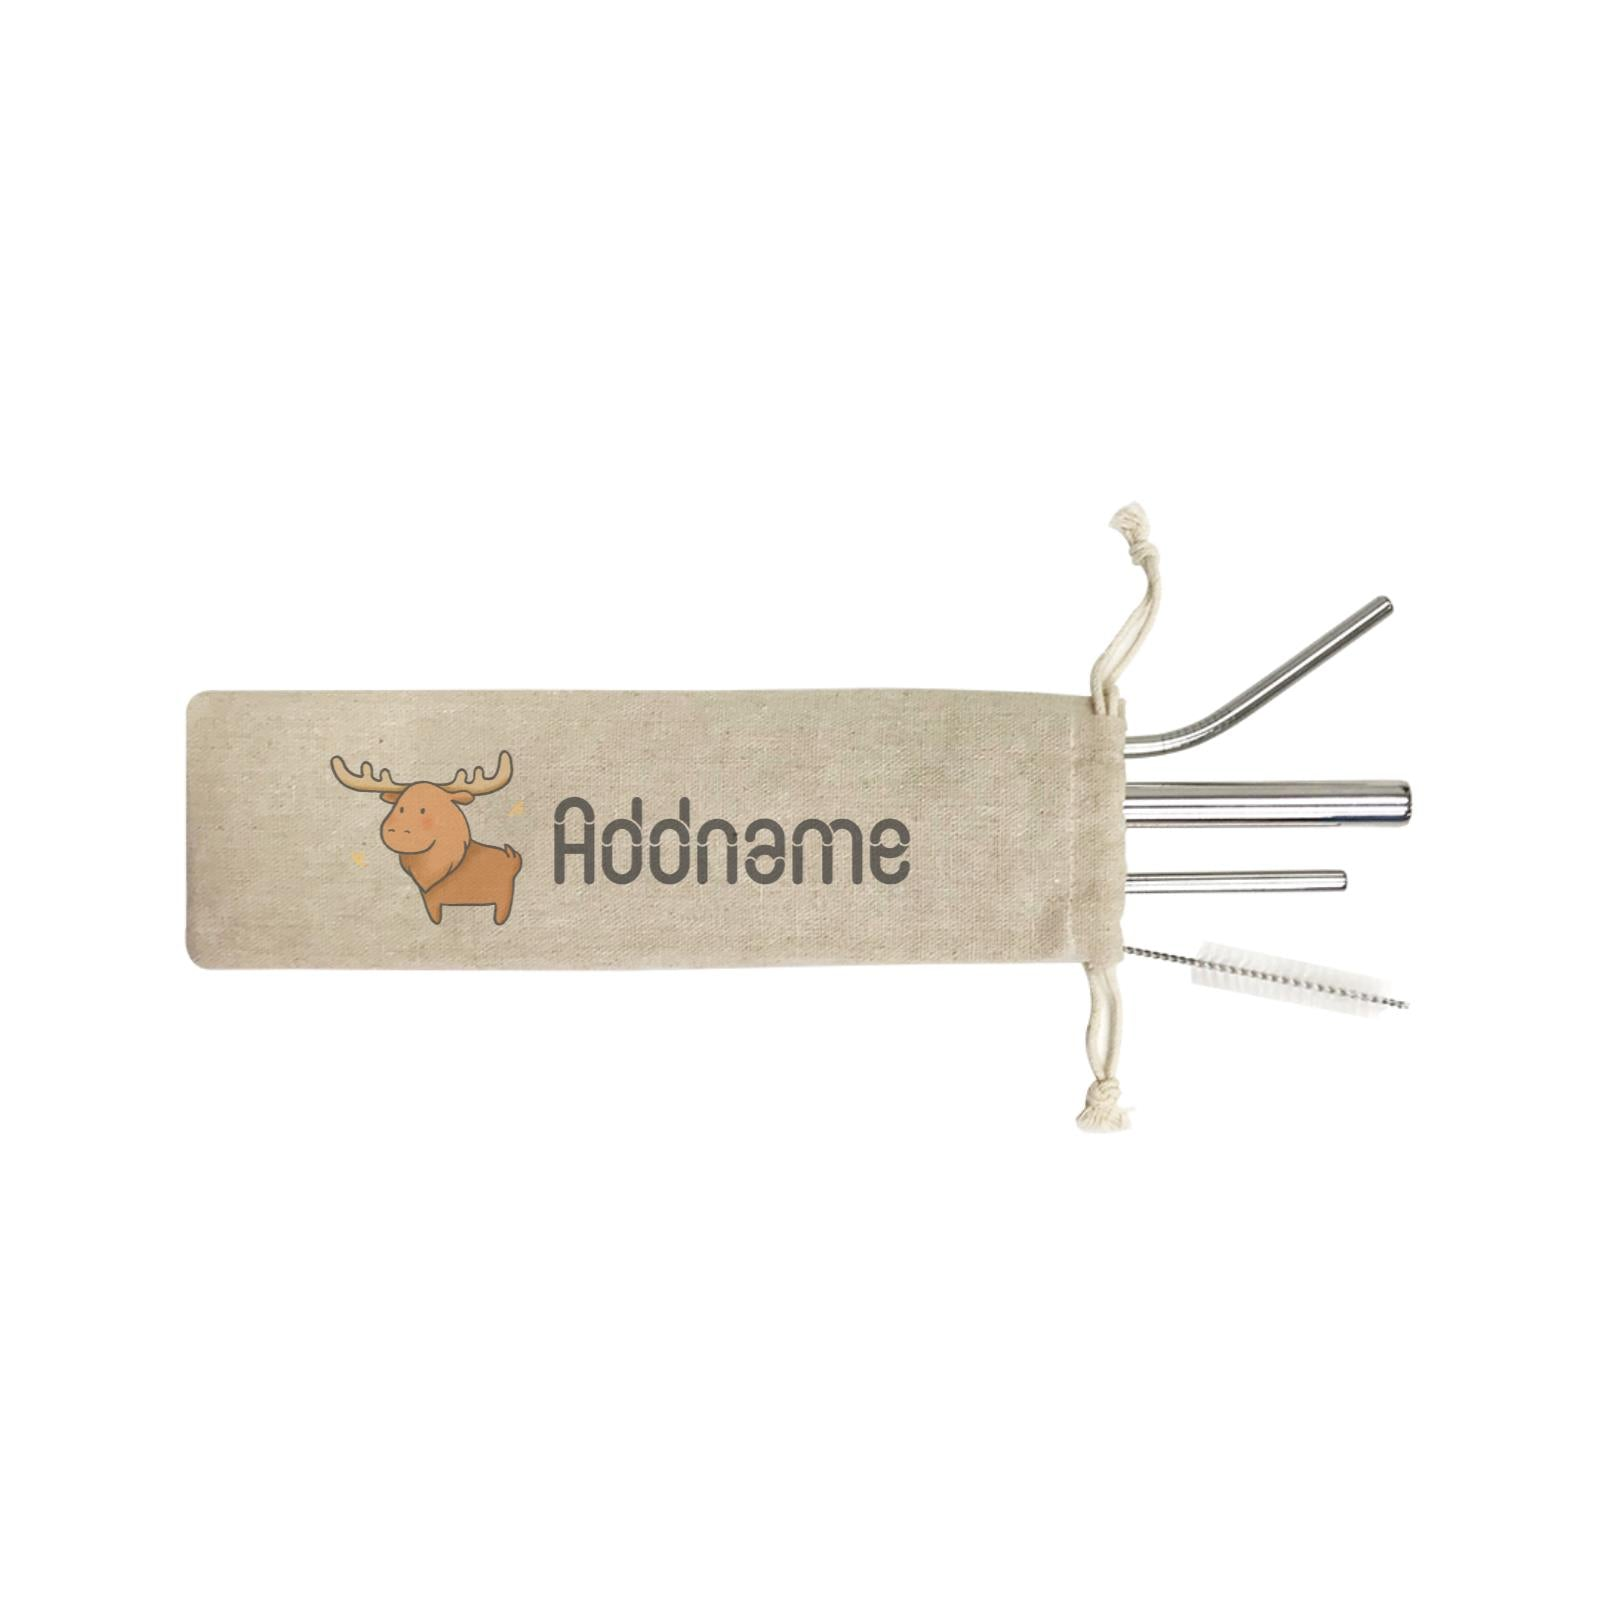 Cute Hand Drawn Style Moose Addname ST SZP 4-In-1 Stainless Steel Straw Set in Satchel